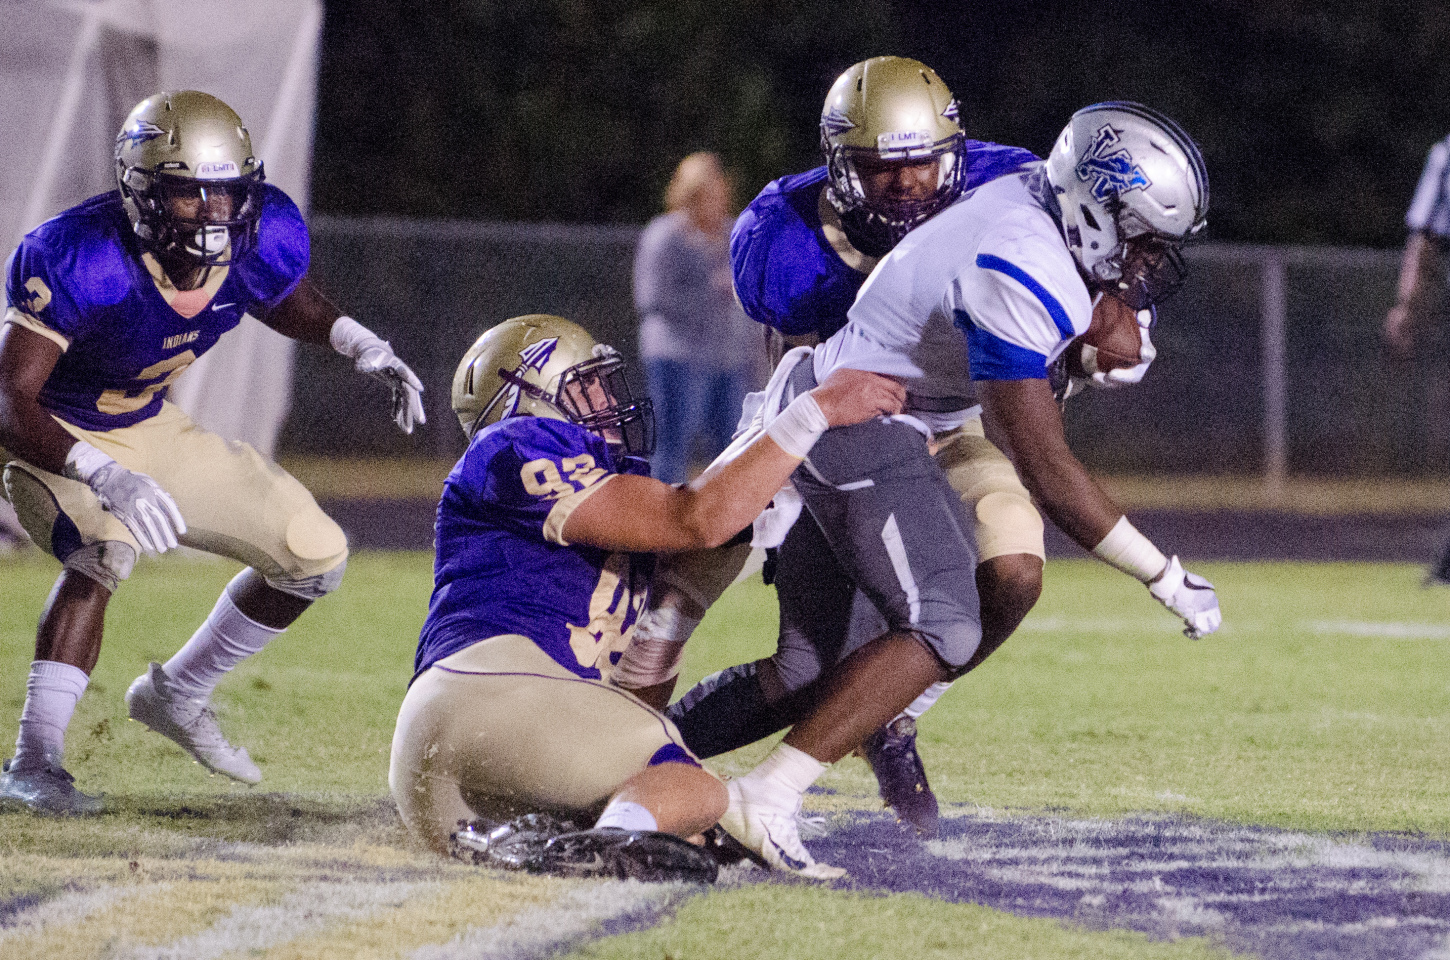 Defensive lineman Clay Patterson grabs a hold of a Westlake running back.